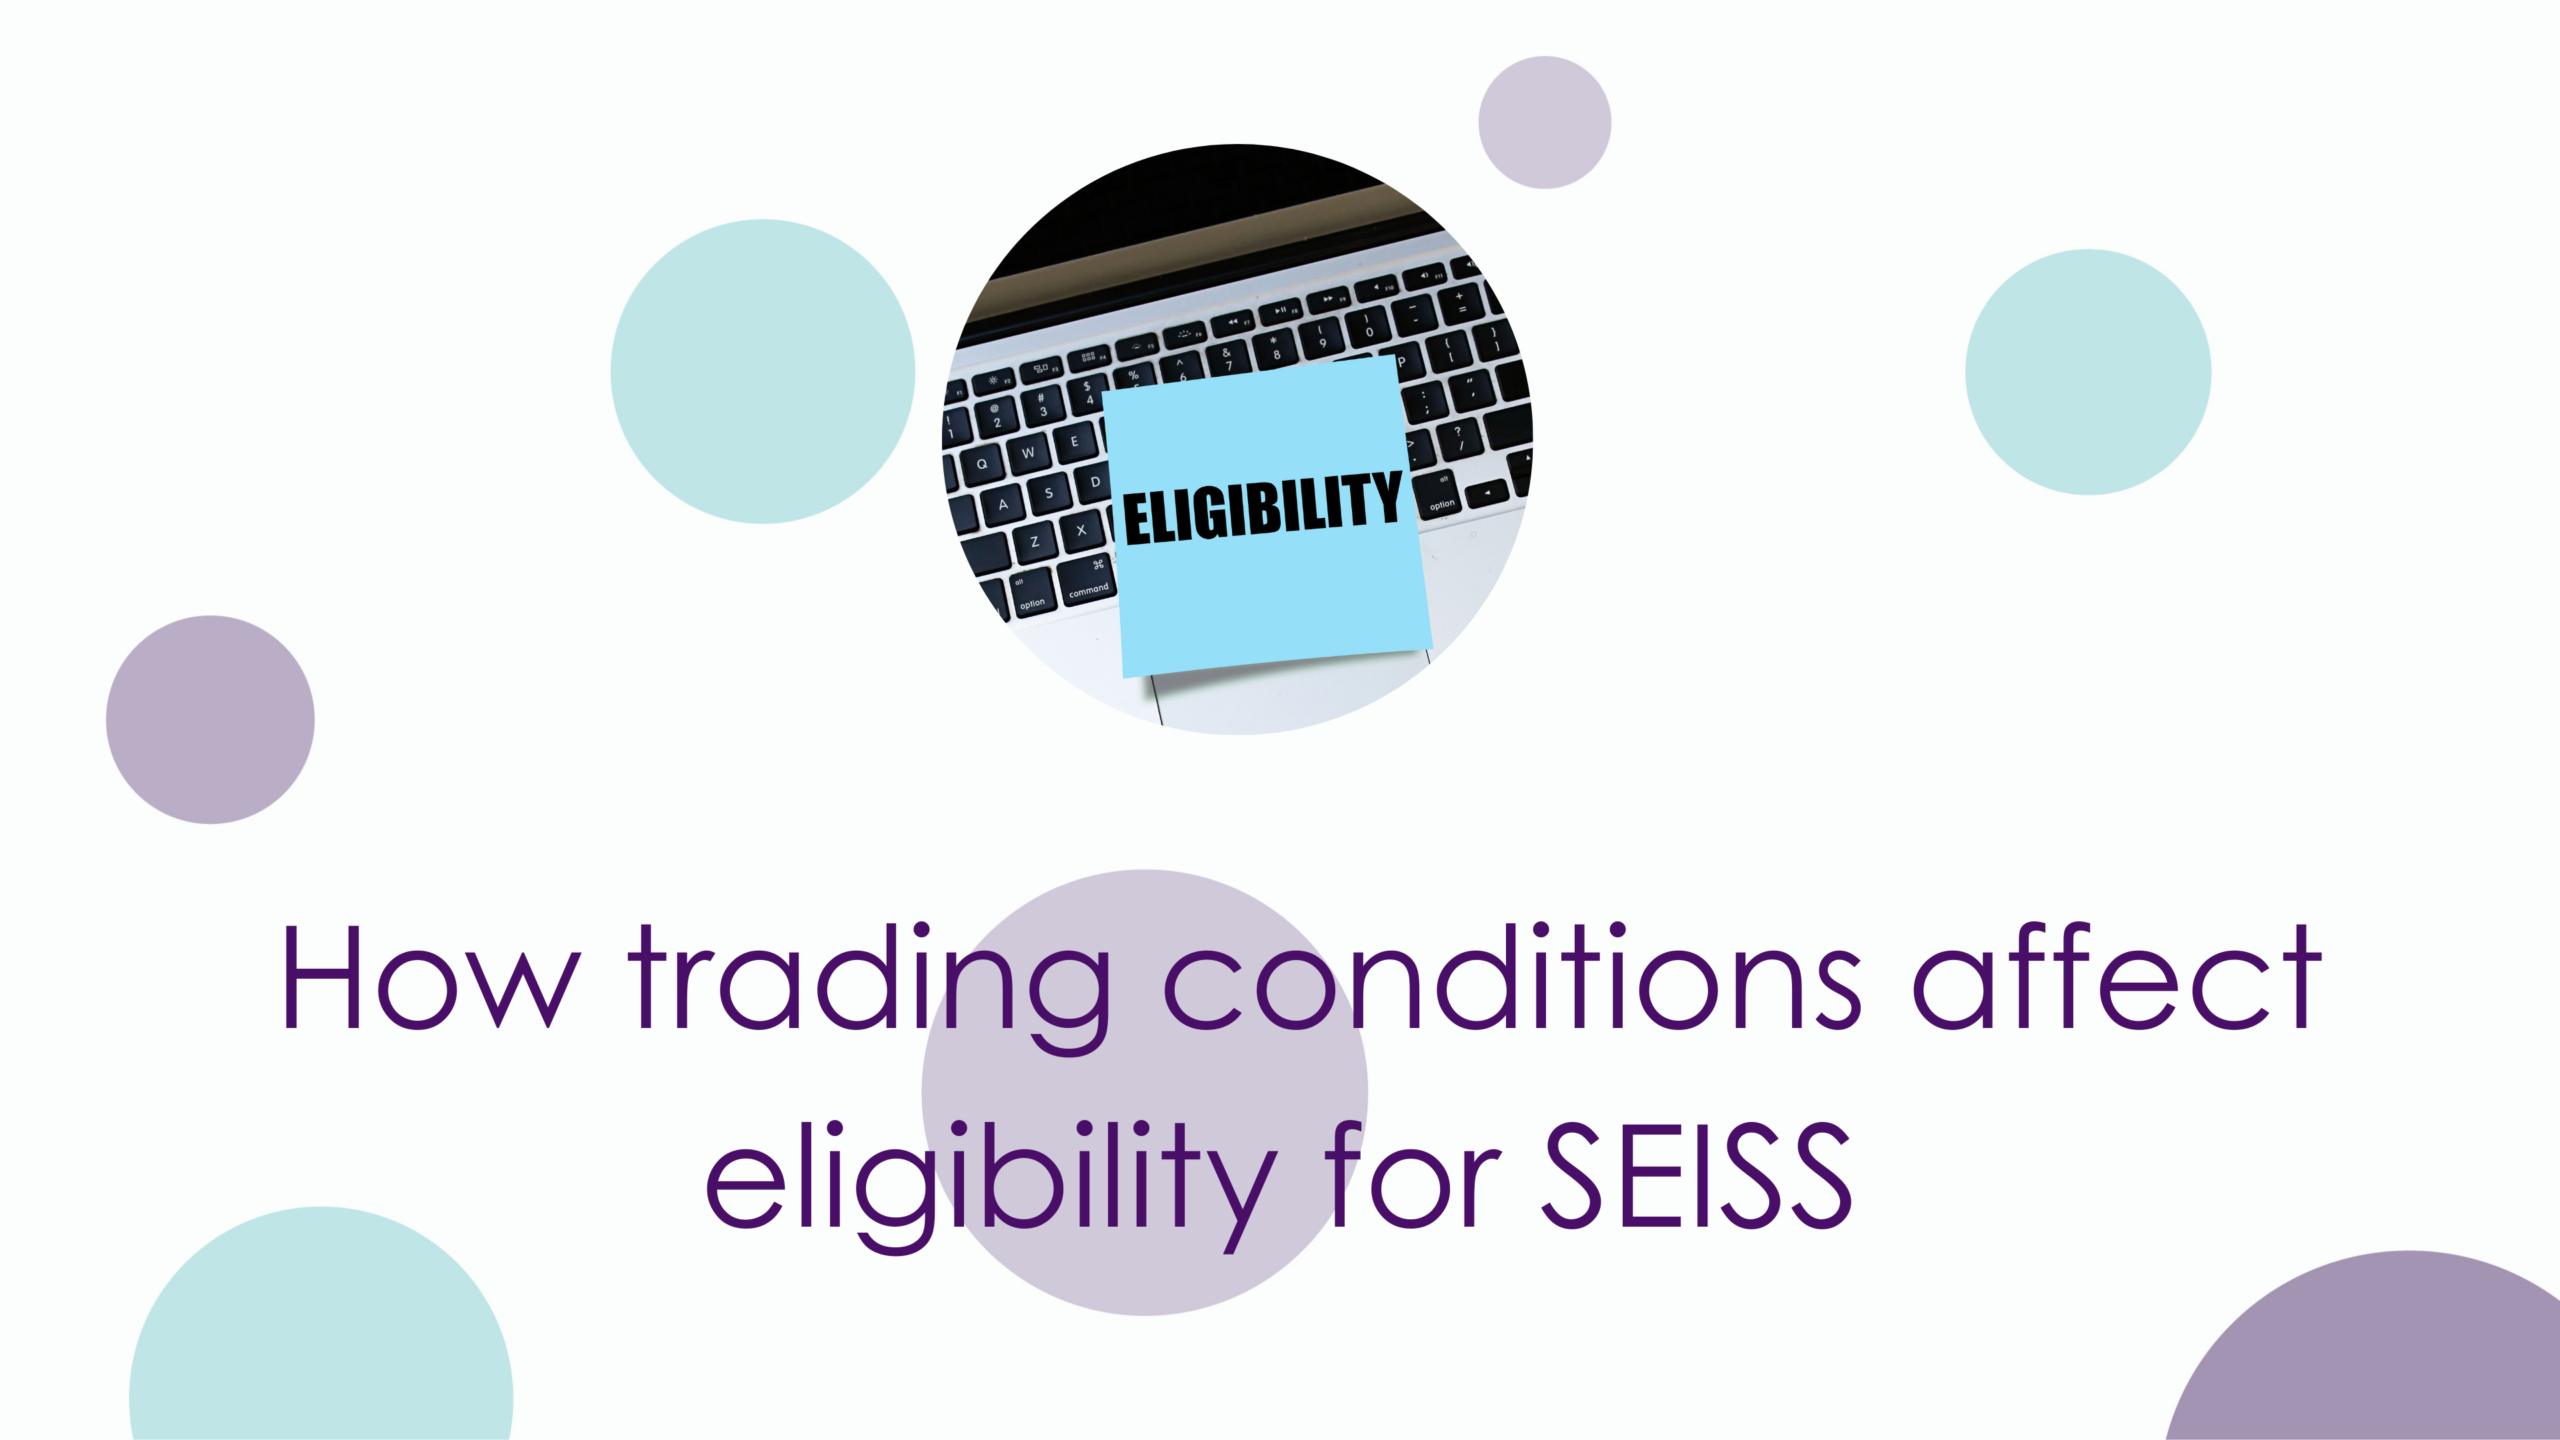 How trading conditions affect eligibility for the Self-Employment Income Support Scheme.